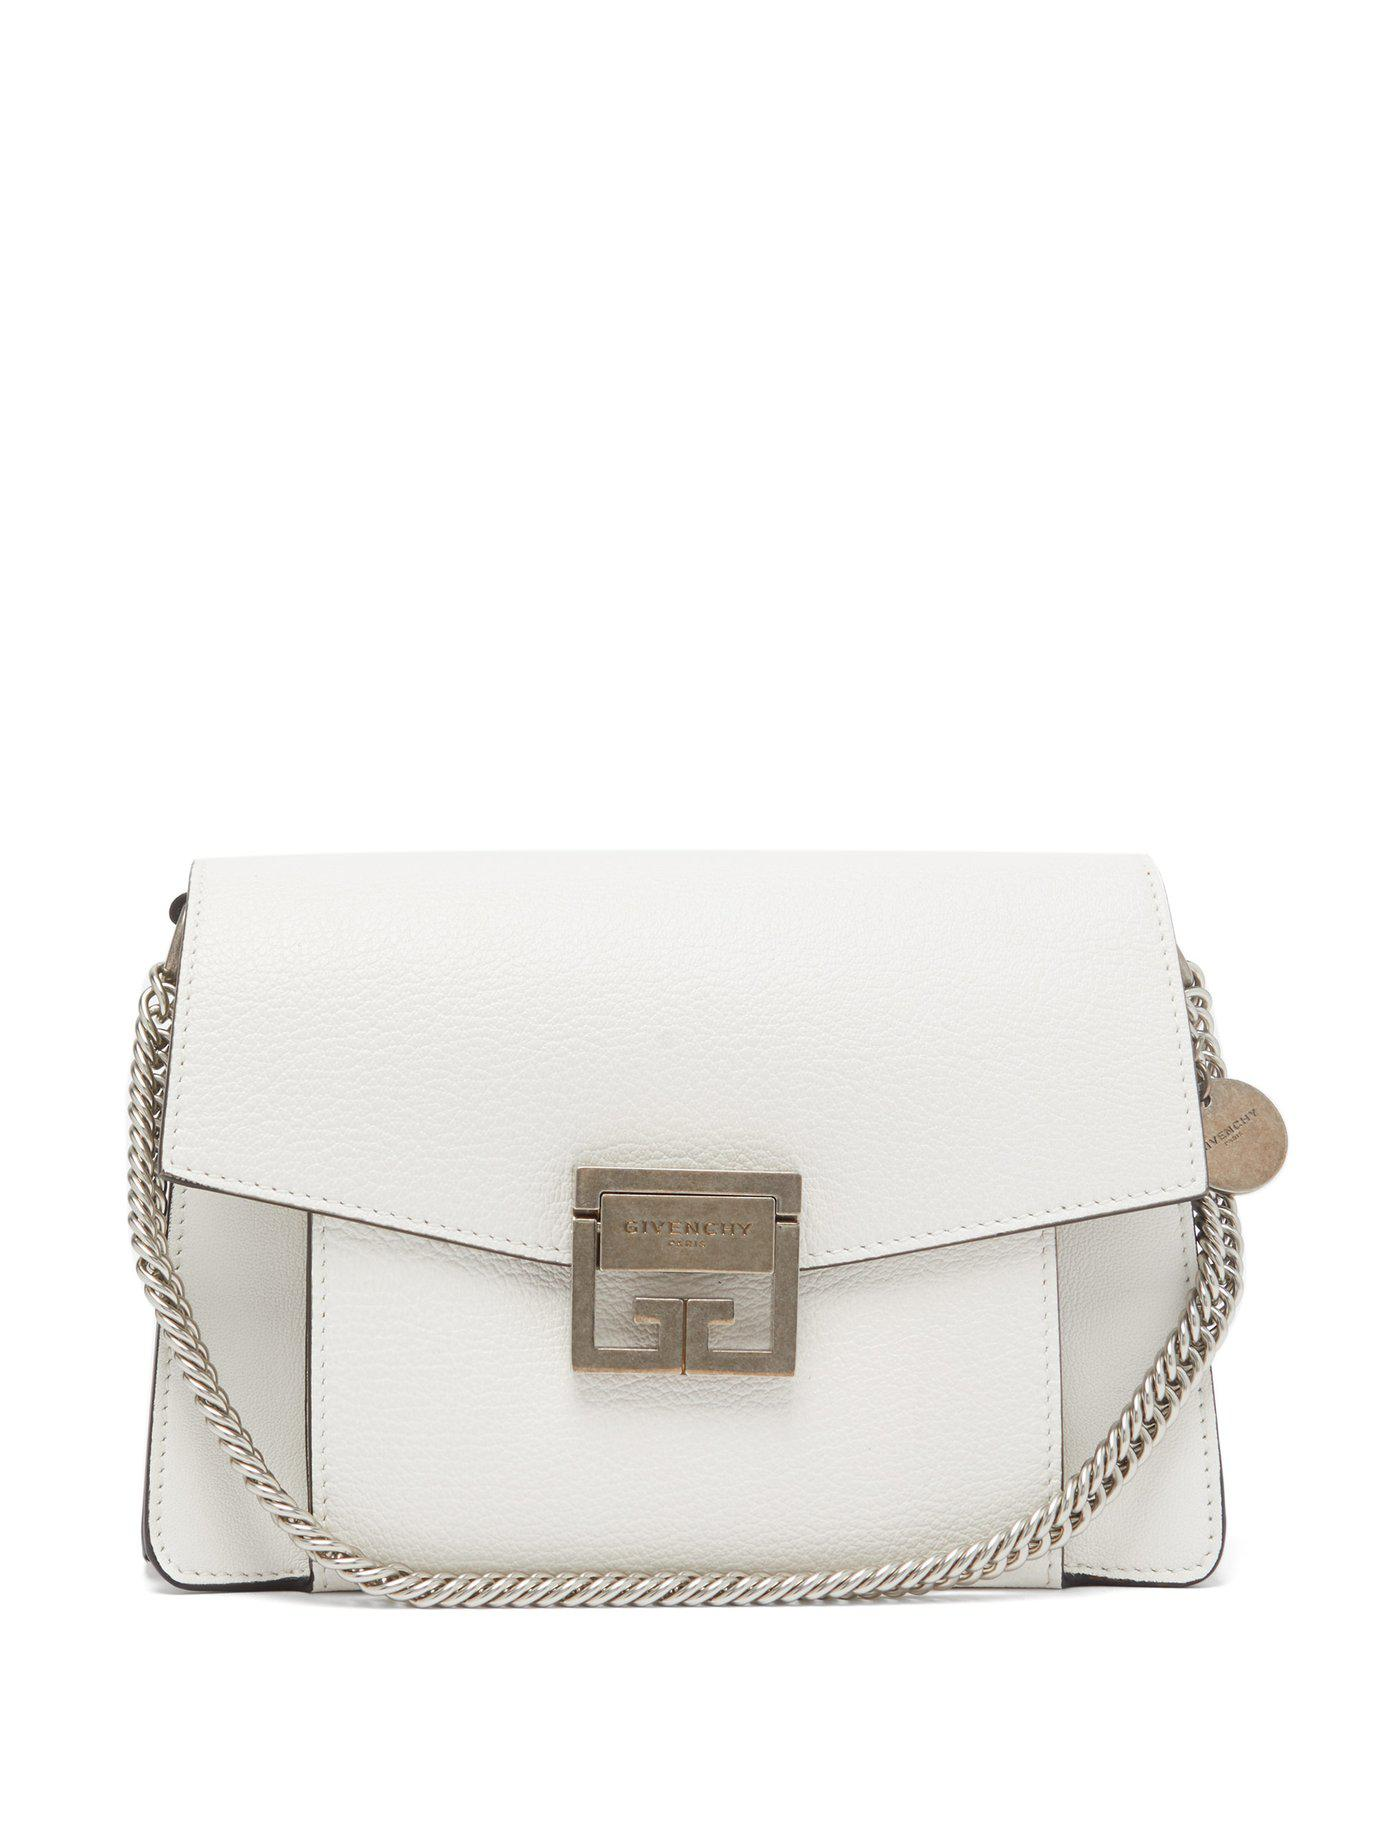 e8175bf9ded5 Lyst - Givenchy Gv3 Small Leather Cross Body Bag in White